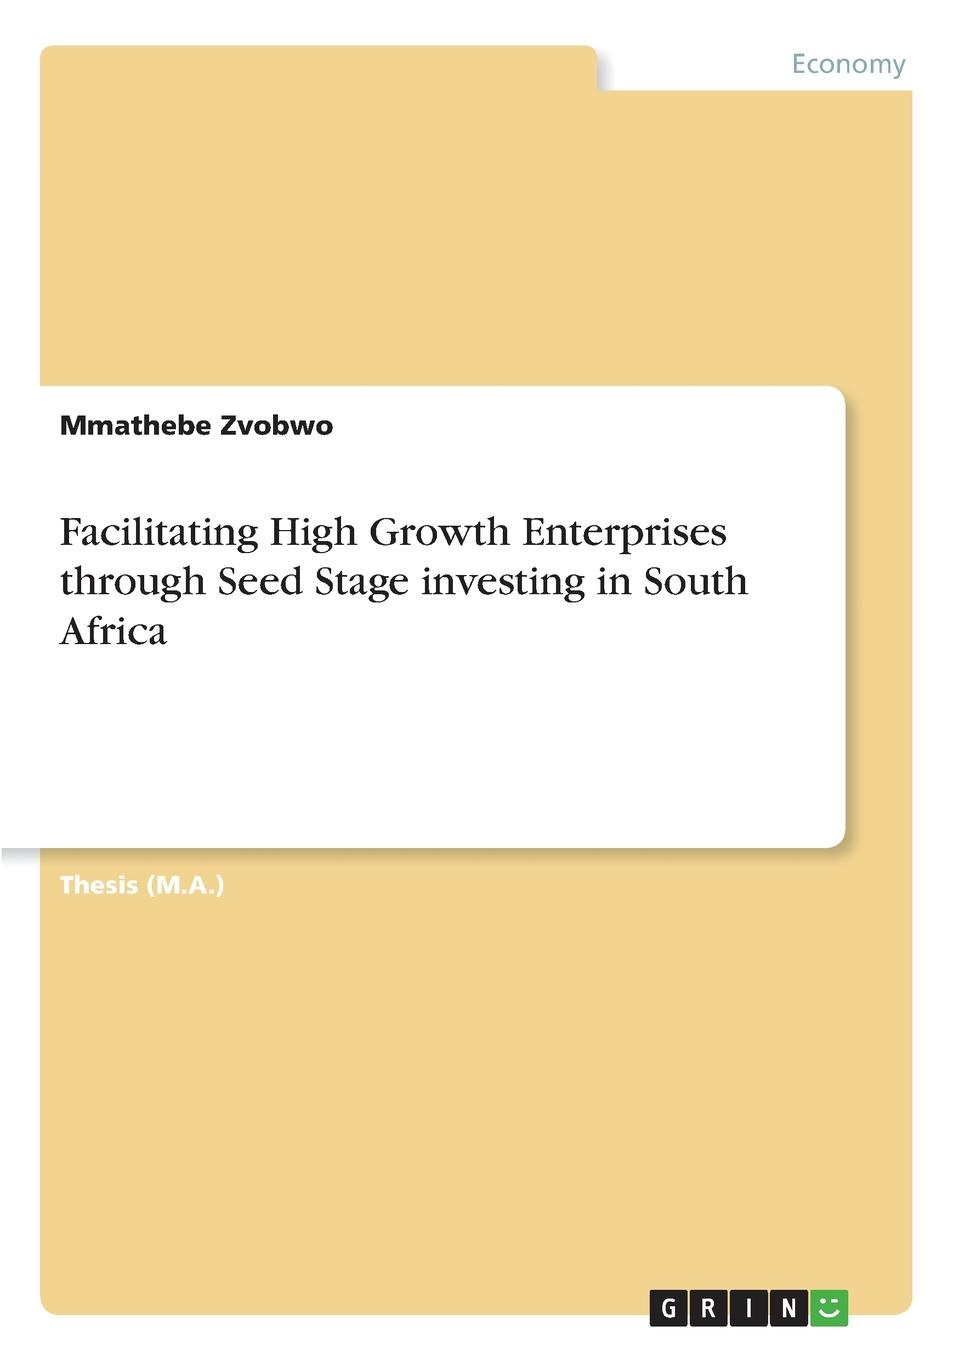 Mmathebe Zvobwo Facilitating High Growth Enterprises through Seed Stage investing in South Africa